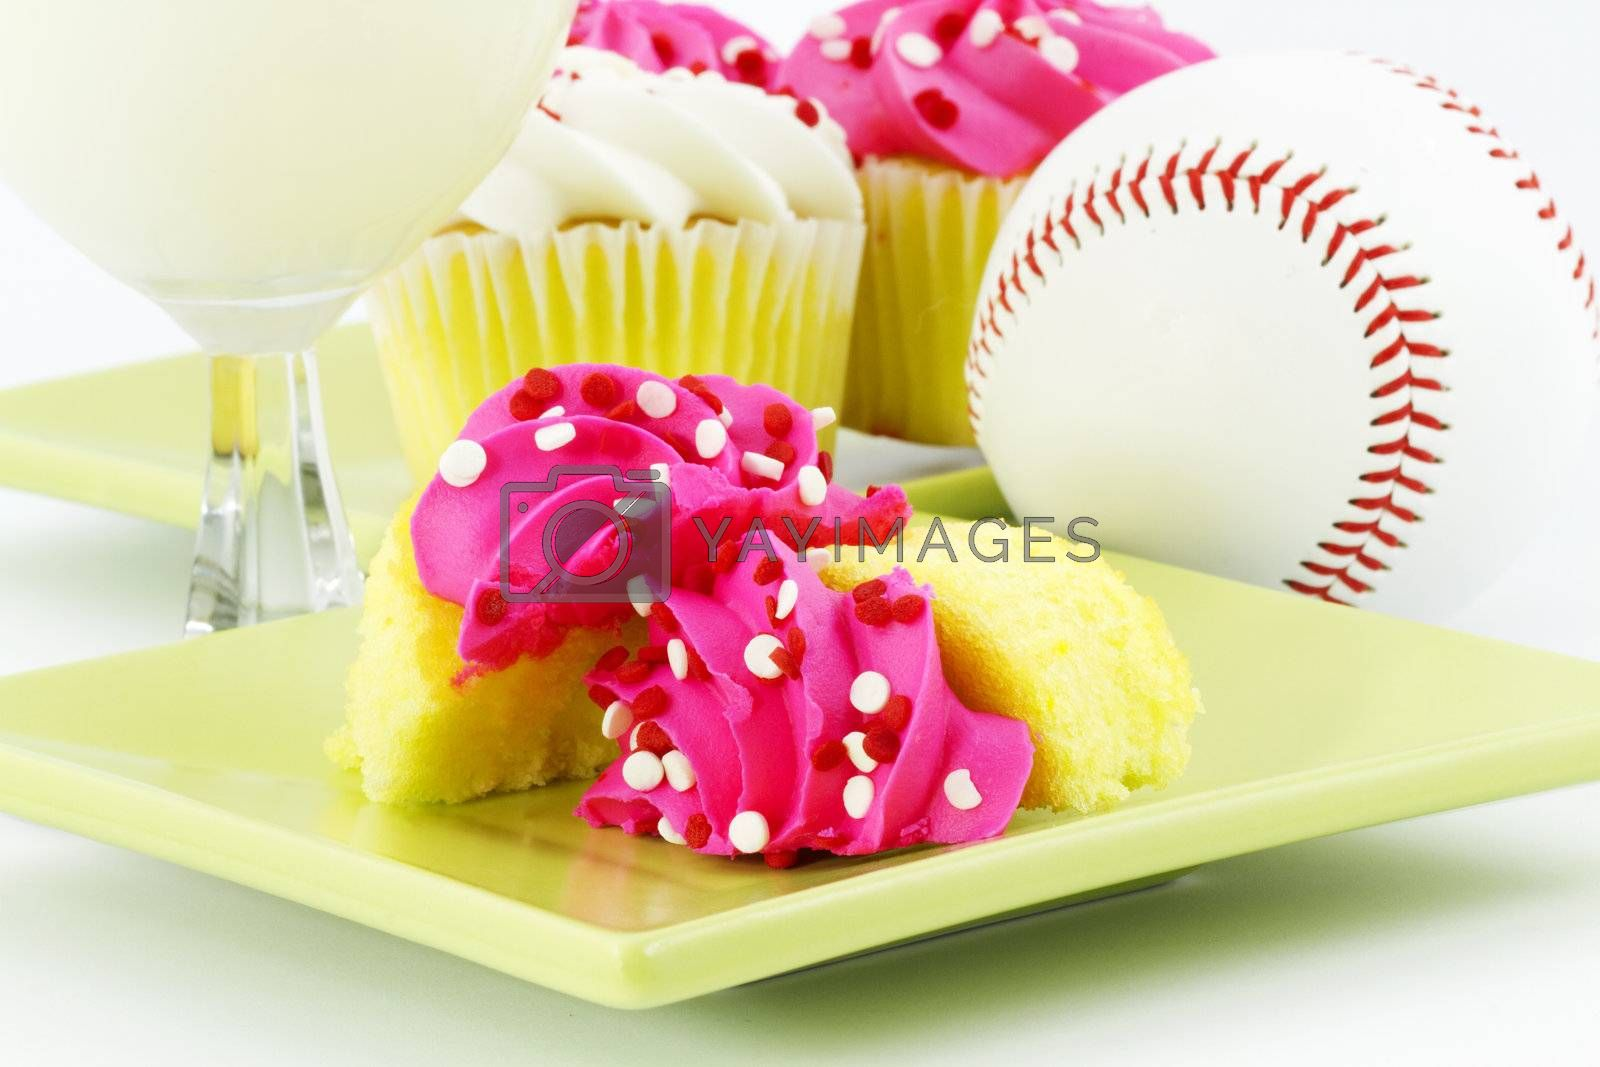 A Celebration with Cupcakes and Milk After the Game by fmcginn